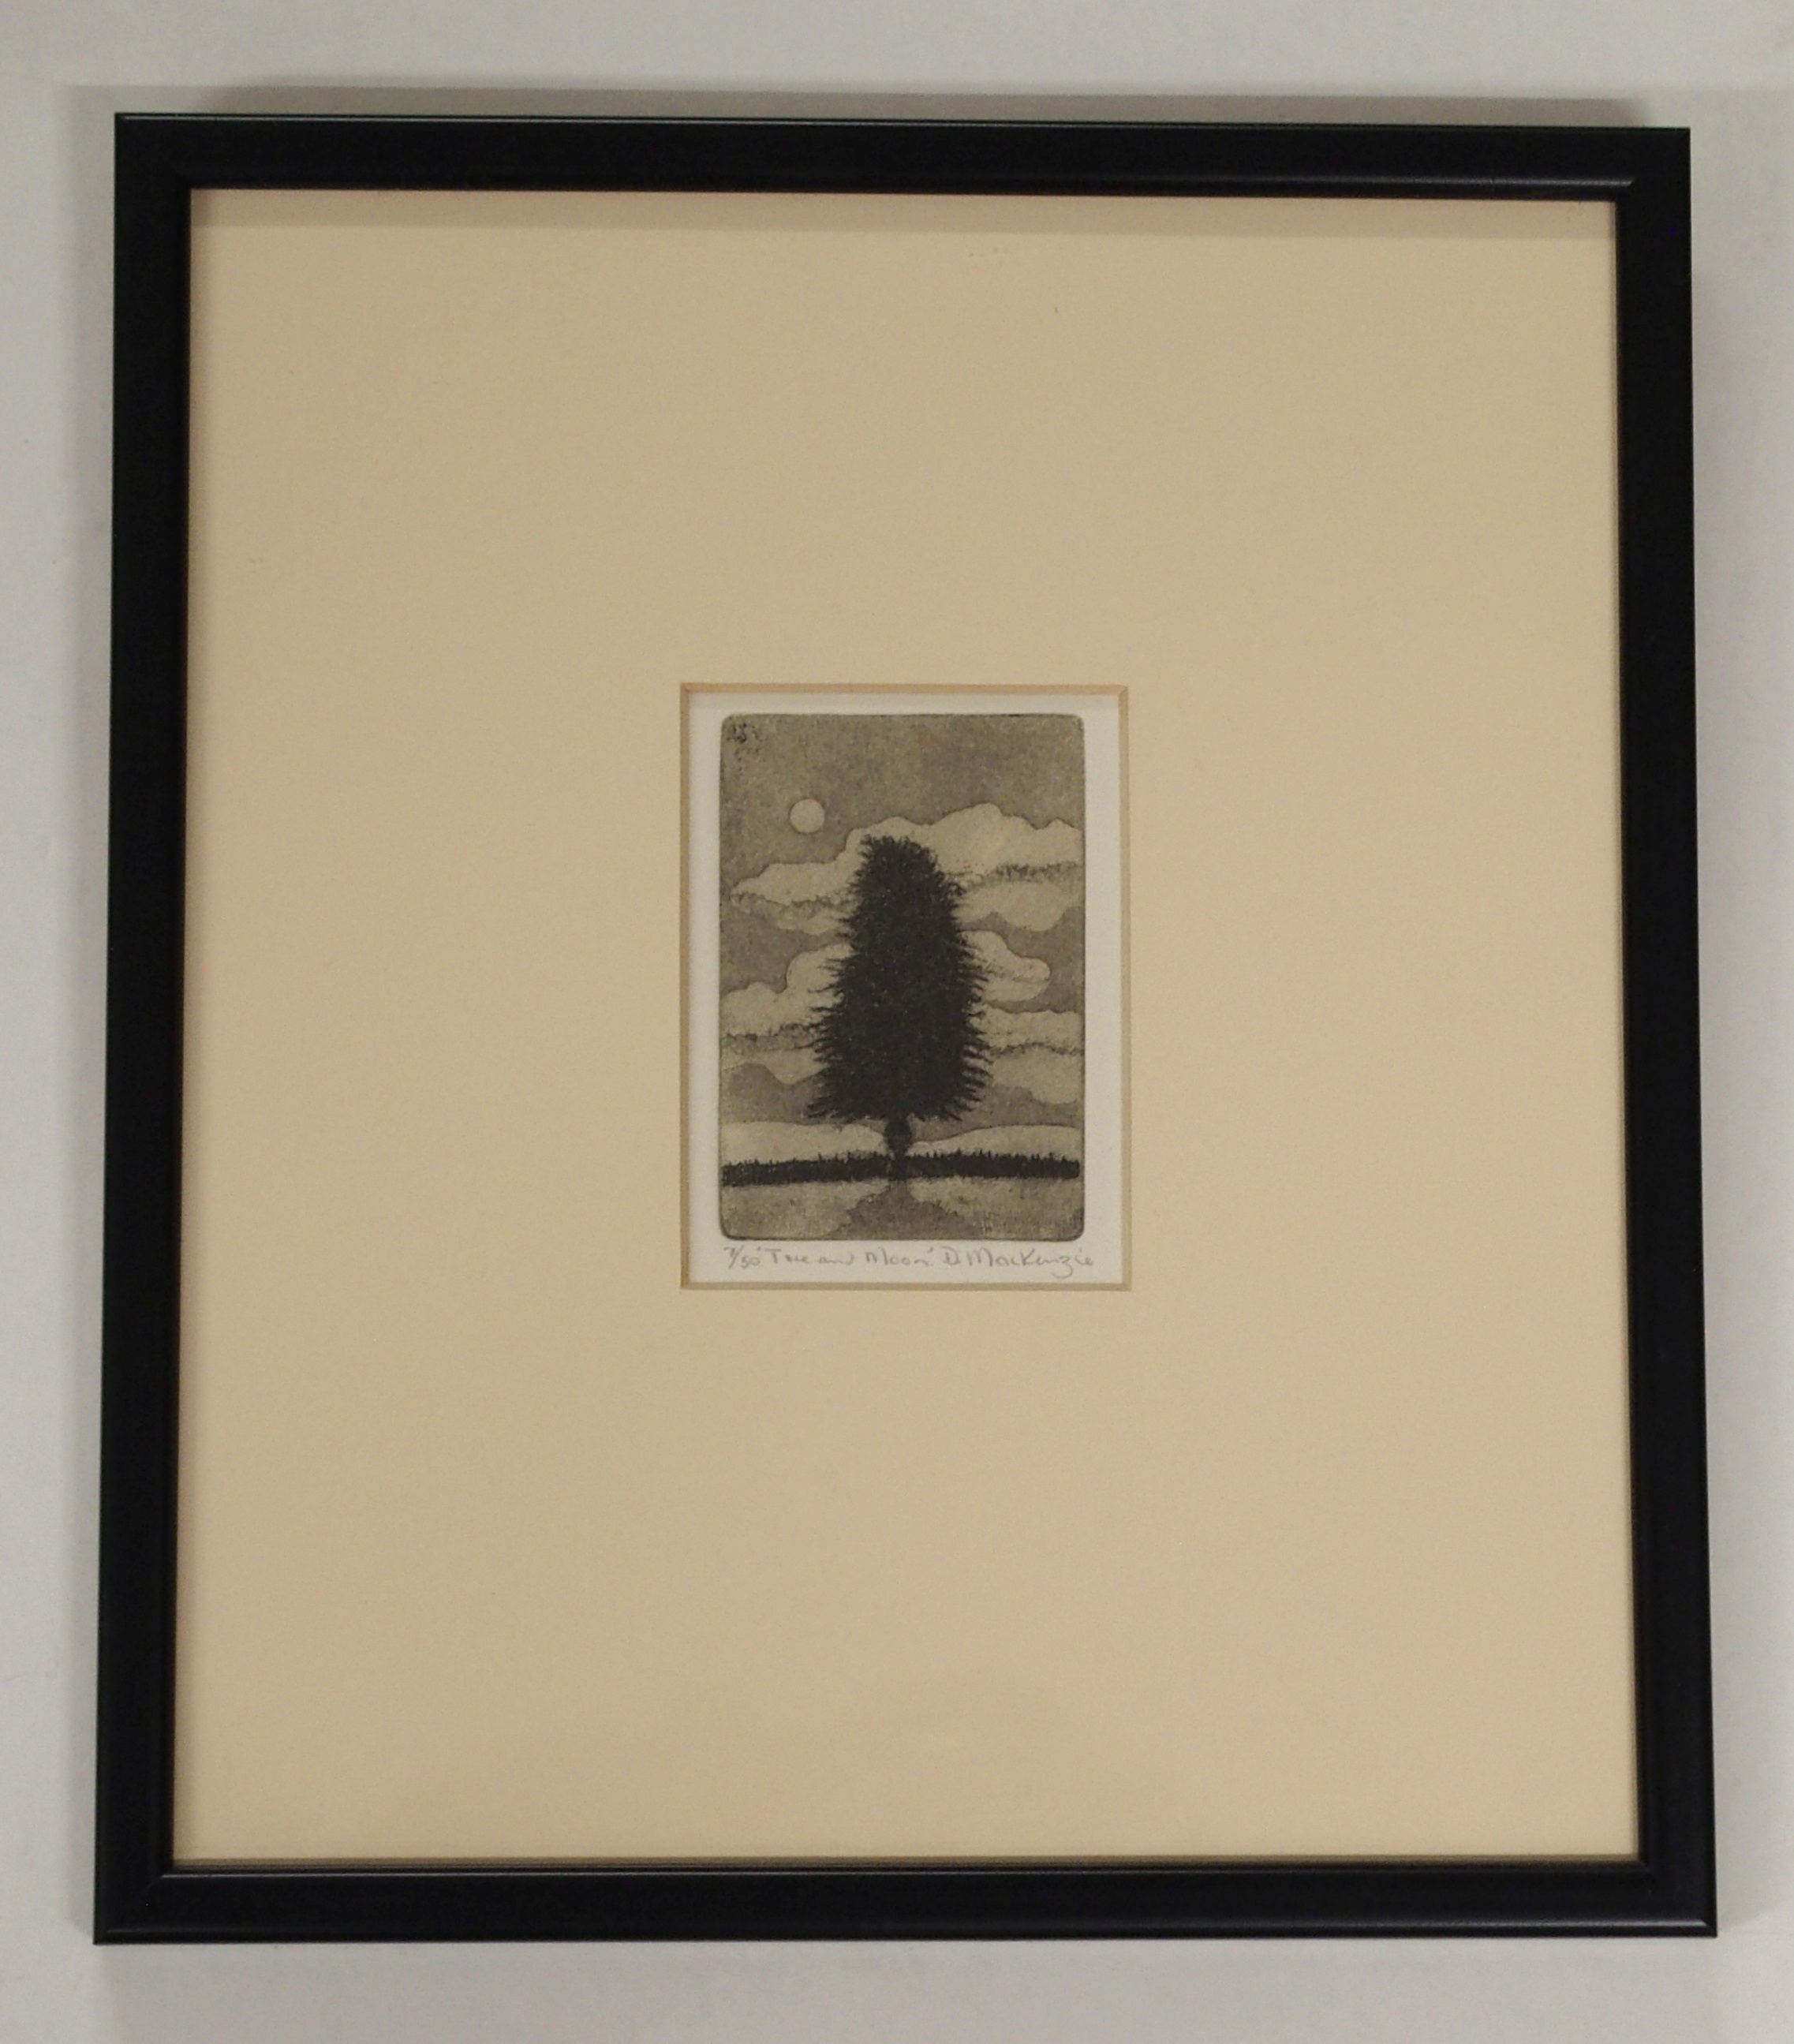 •DUNCAN MACKENZIE (SCOTTISH CONTEMPORARY) DANCING SCARECROWS etching, signed, inscribed and - Image 7 of 7